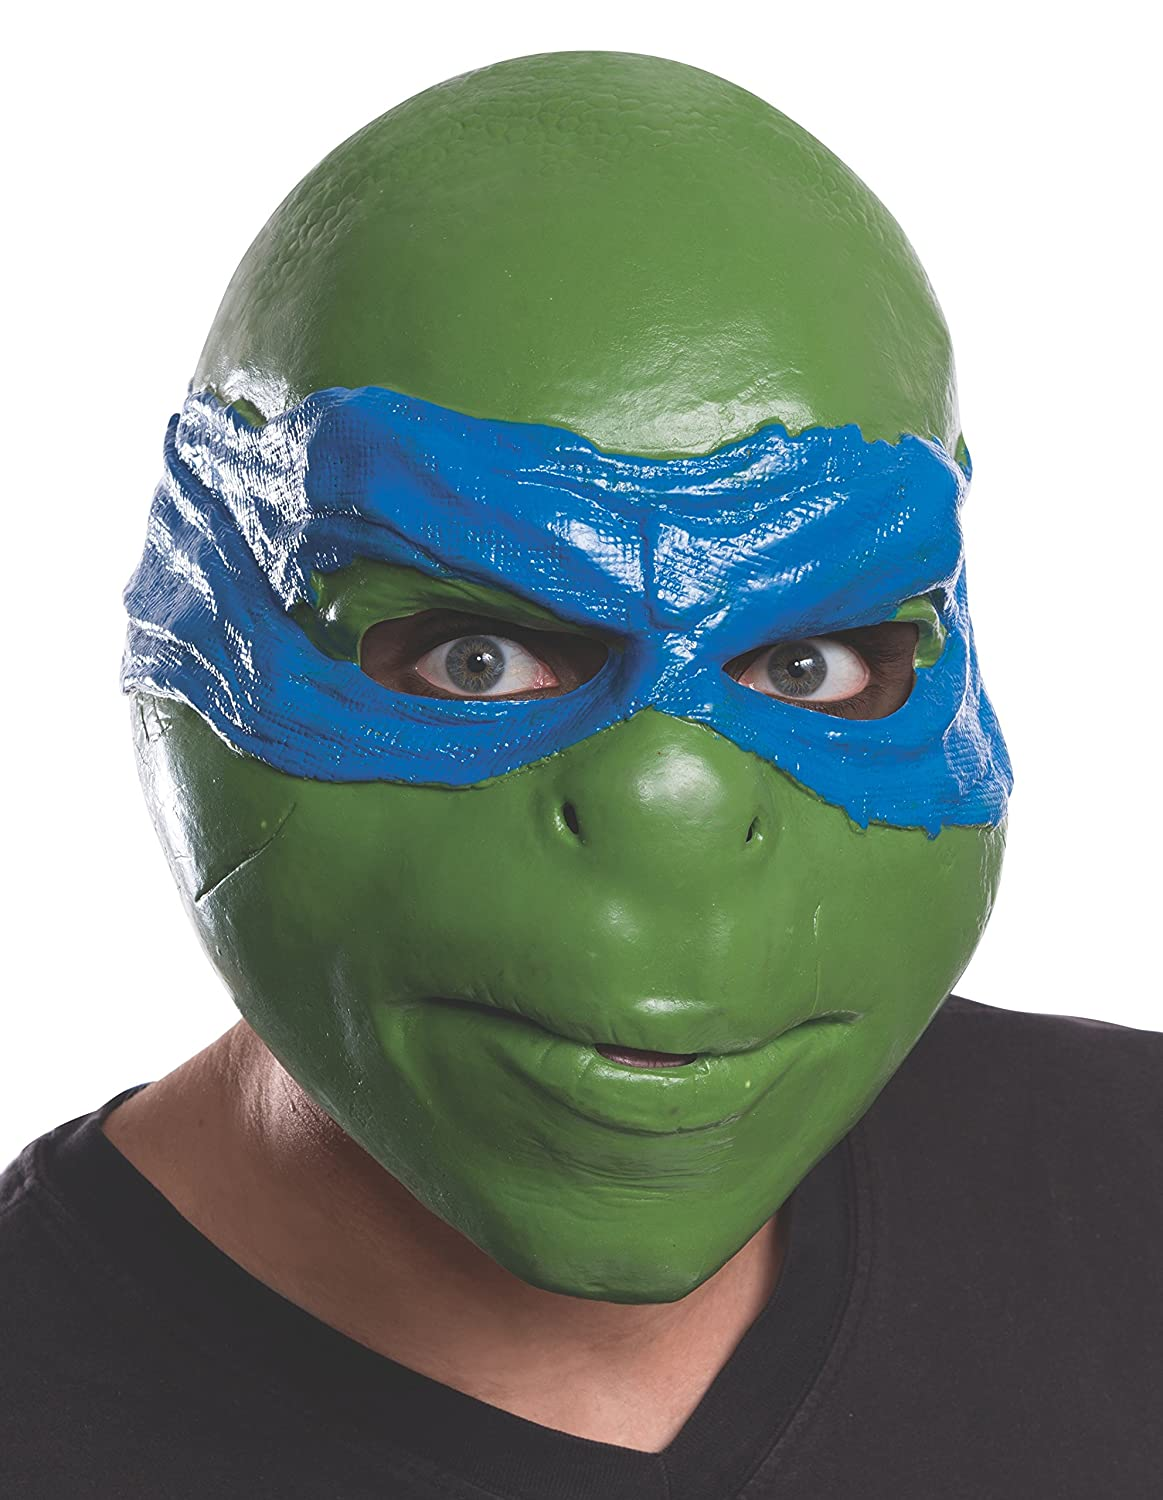 Amazon.com Rubieu0027s Menu0027s Teenage Mutant Ninja Turtles Movie Leonardo Adult 3/4 Mask Multi One Size Clothing  sc 1 st  Amazon.com & Amazon.com: Rubieu0027s Menu0027s Teenage Mutant Ninja Turtles Movie ...